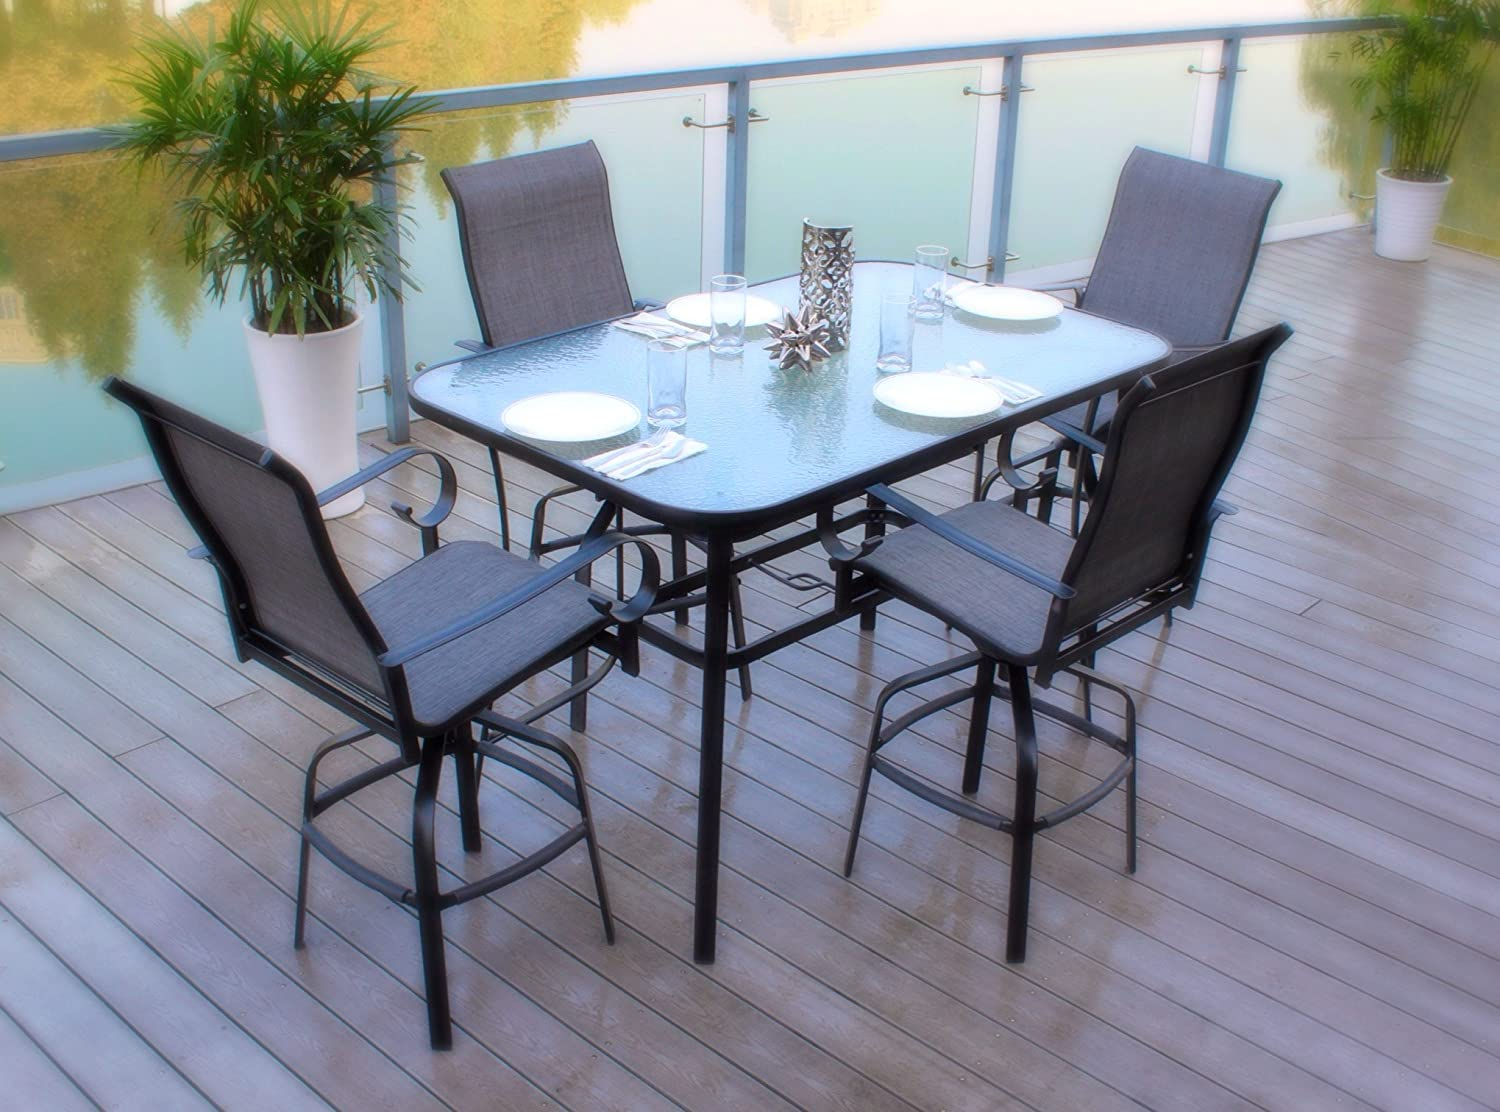 Pebble lane living all weather rust proof indoor outdoor 5 piece cast aluminum patio bar dining set 1 tempered glass top bar dining table 4 swivel bar